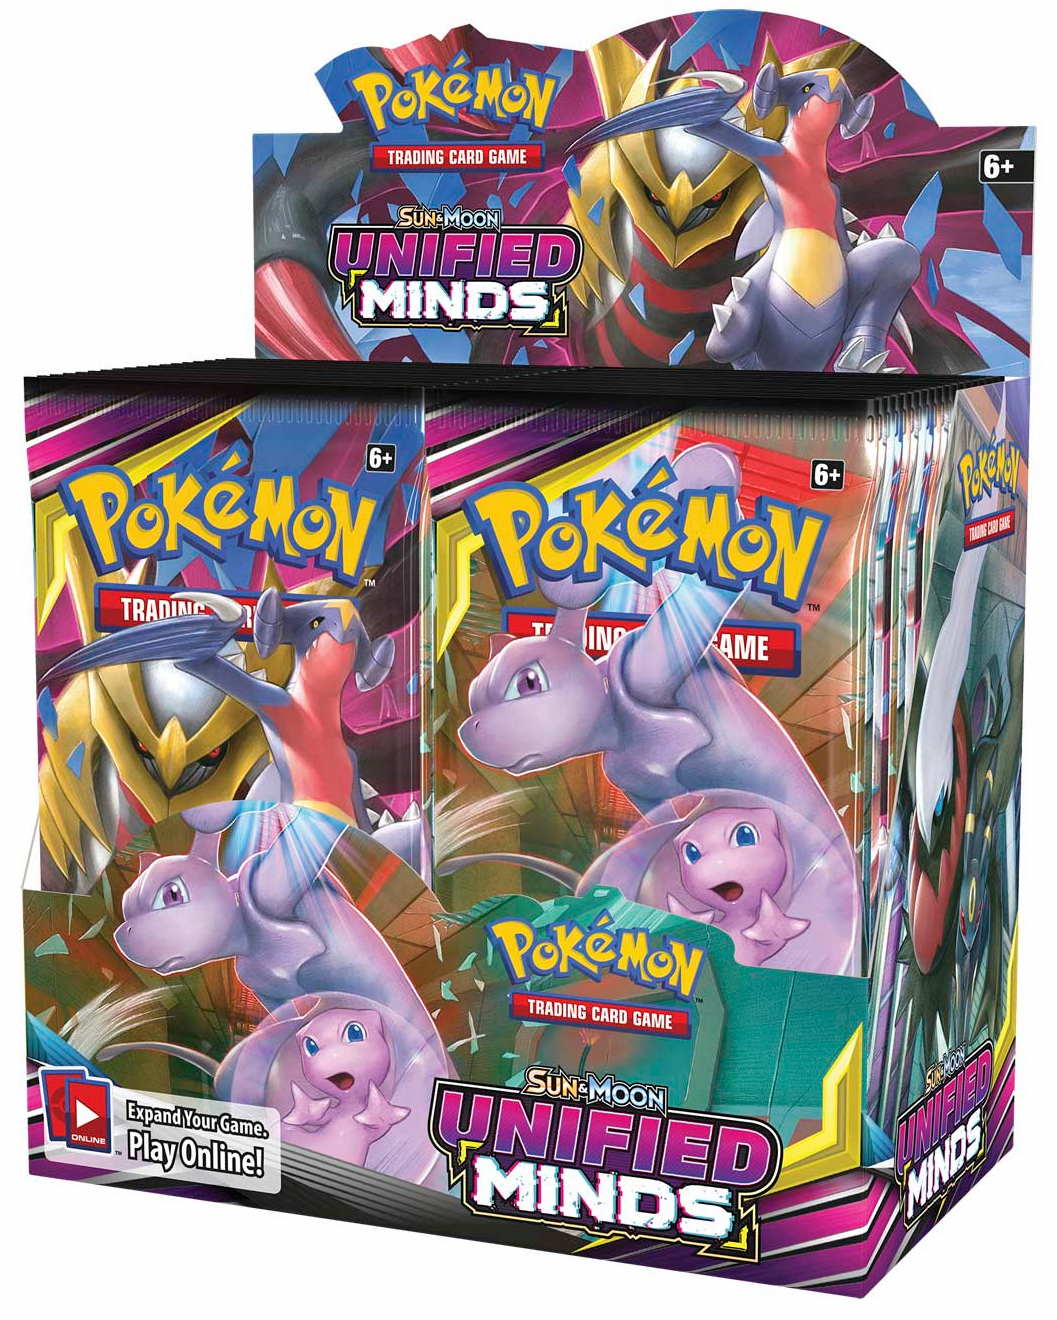 Pokemon Sun and Moon Unified Minds Sealed Booster Box